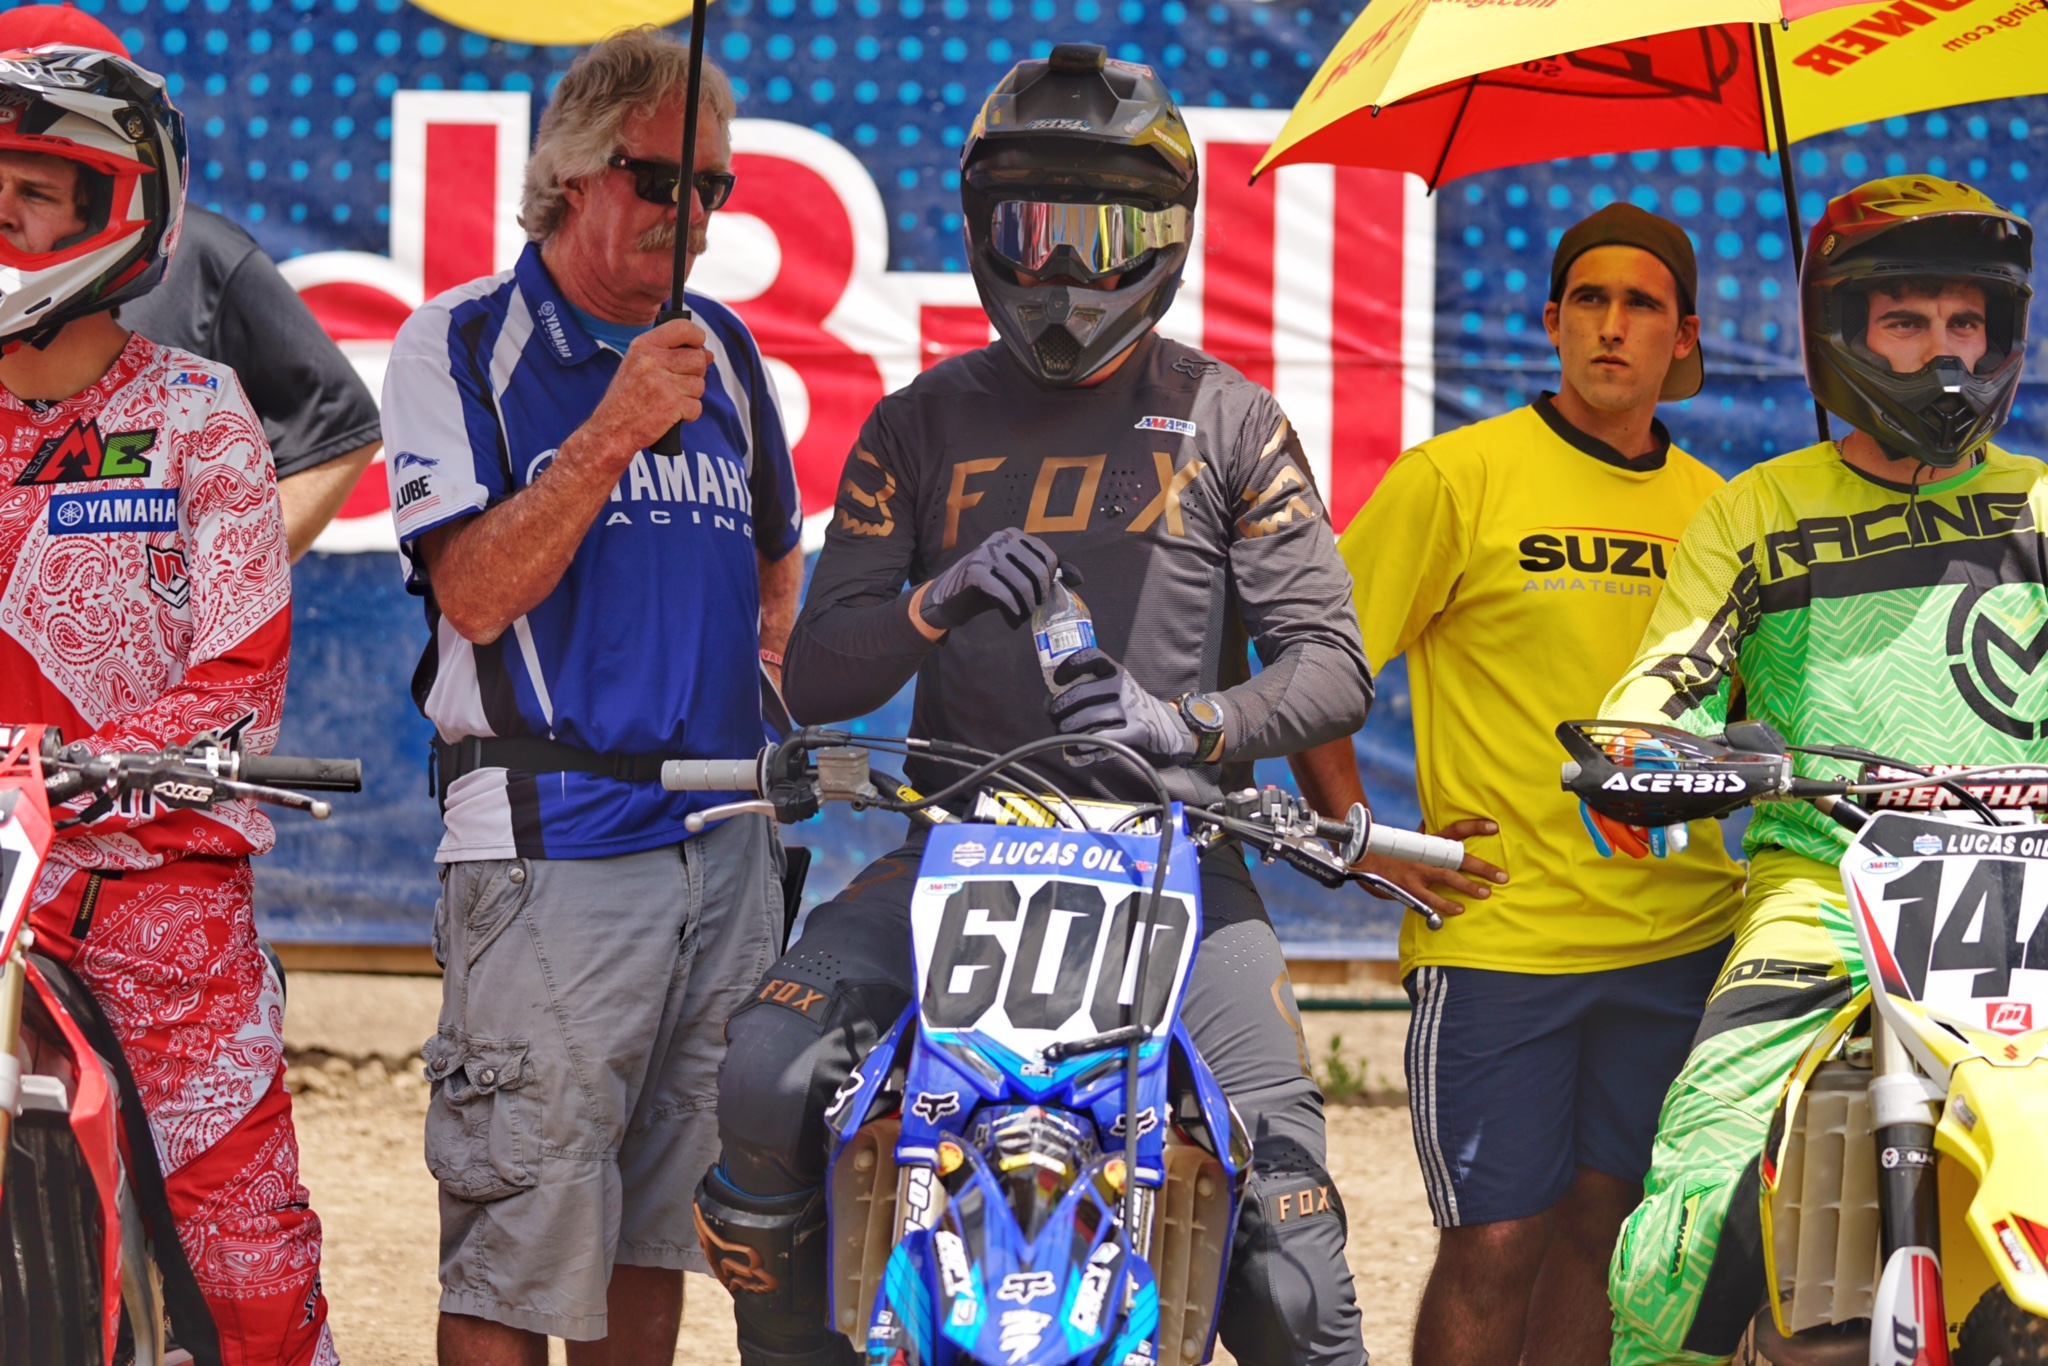 Connor was on pace for a top-20 overall finish, but crashed in the second moto while running 20th.